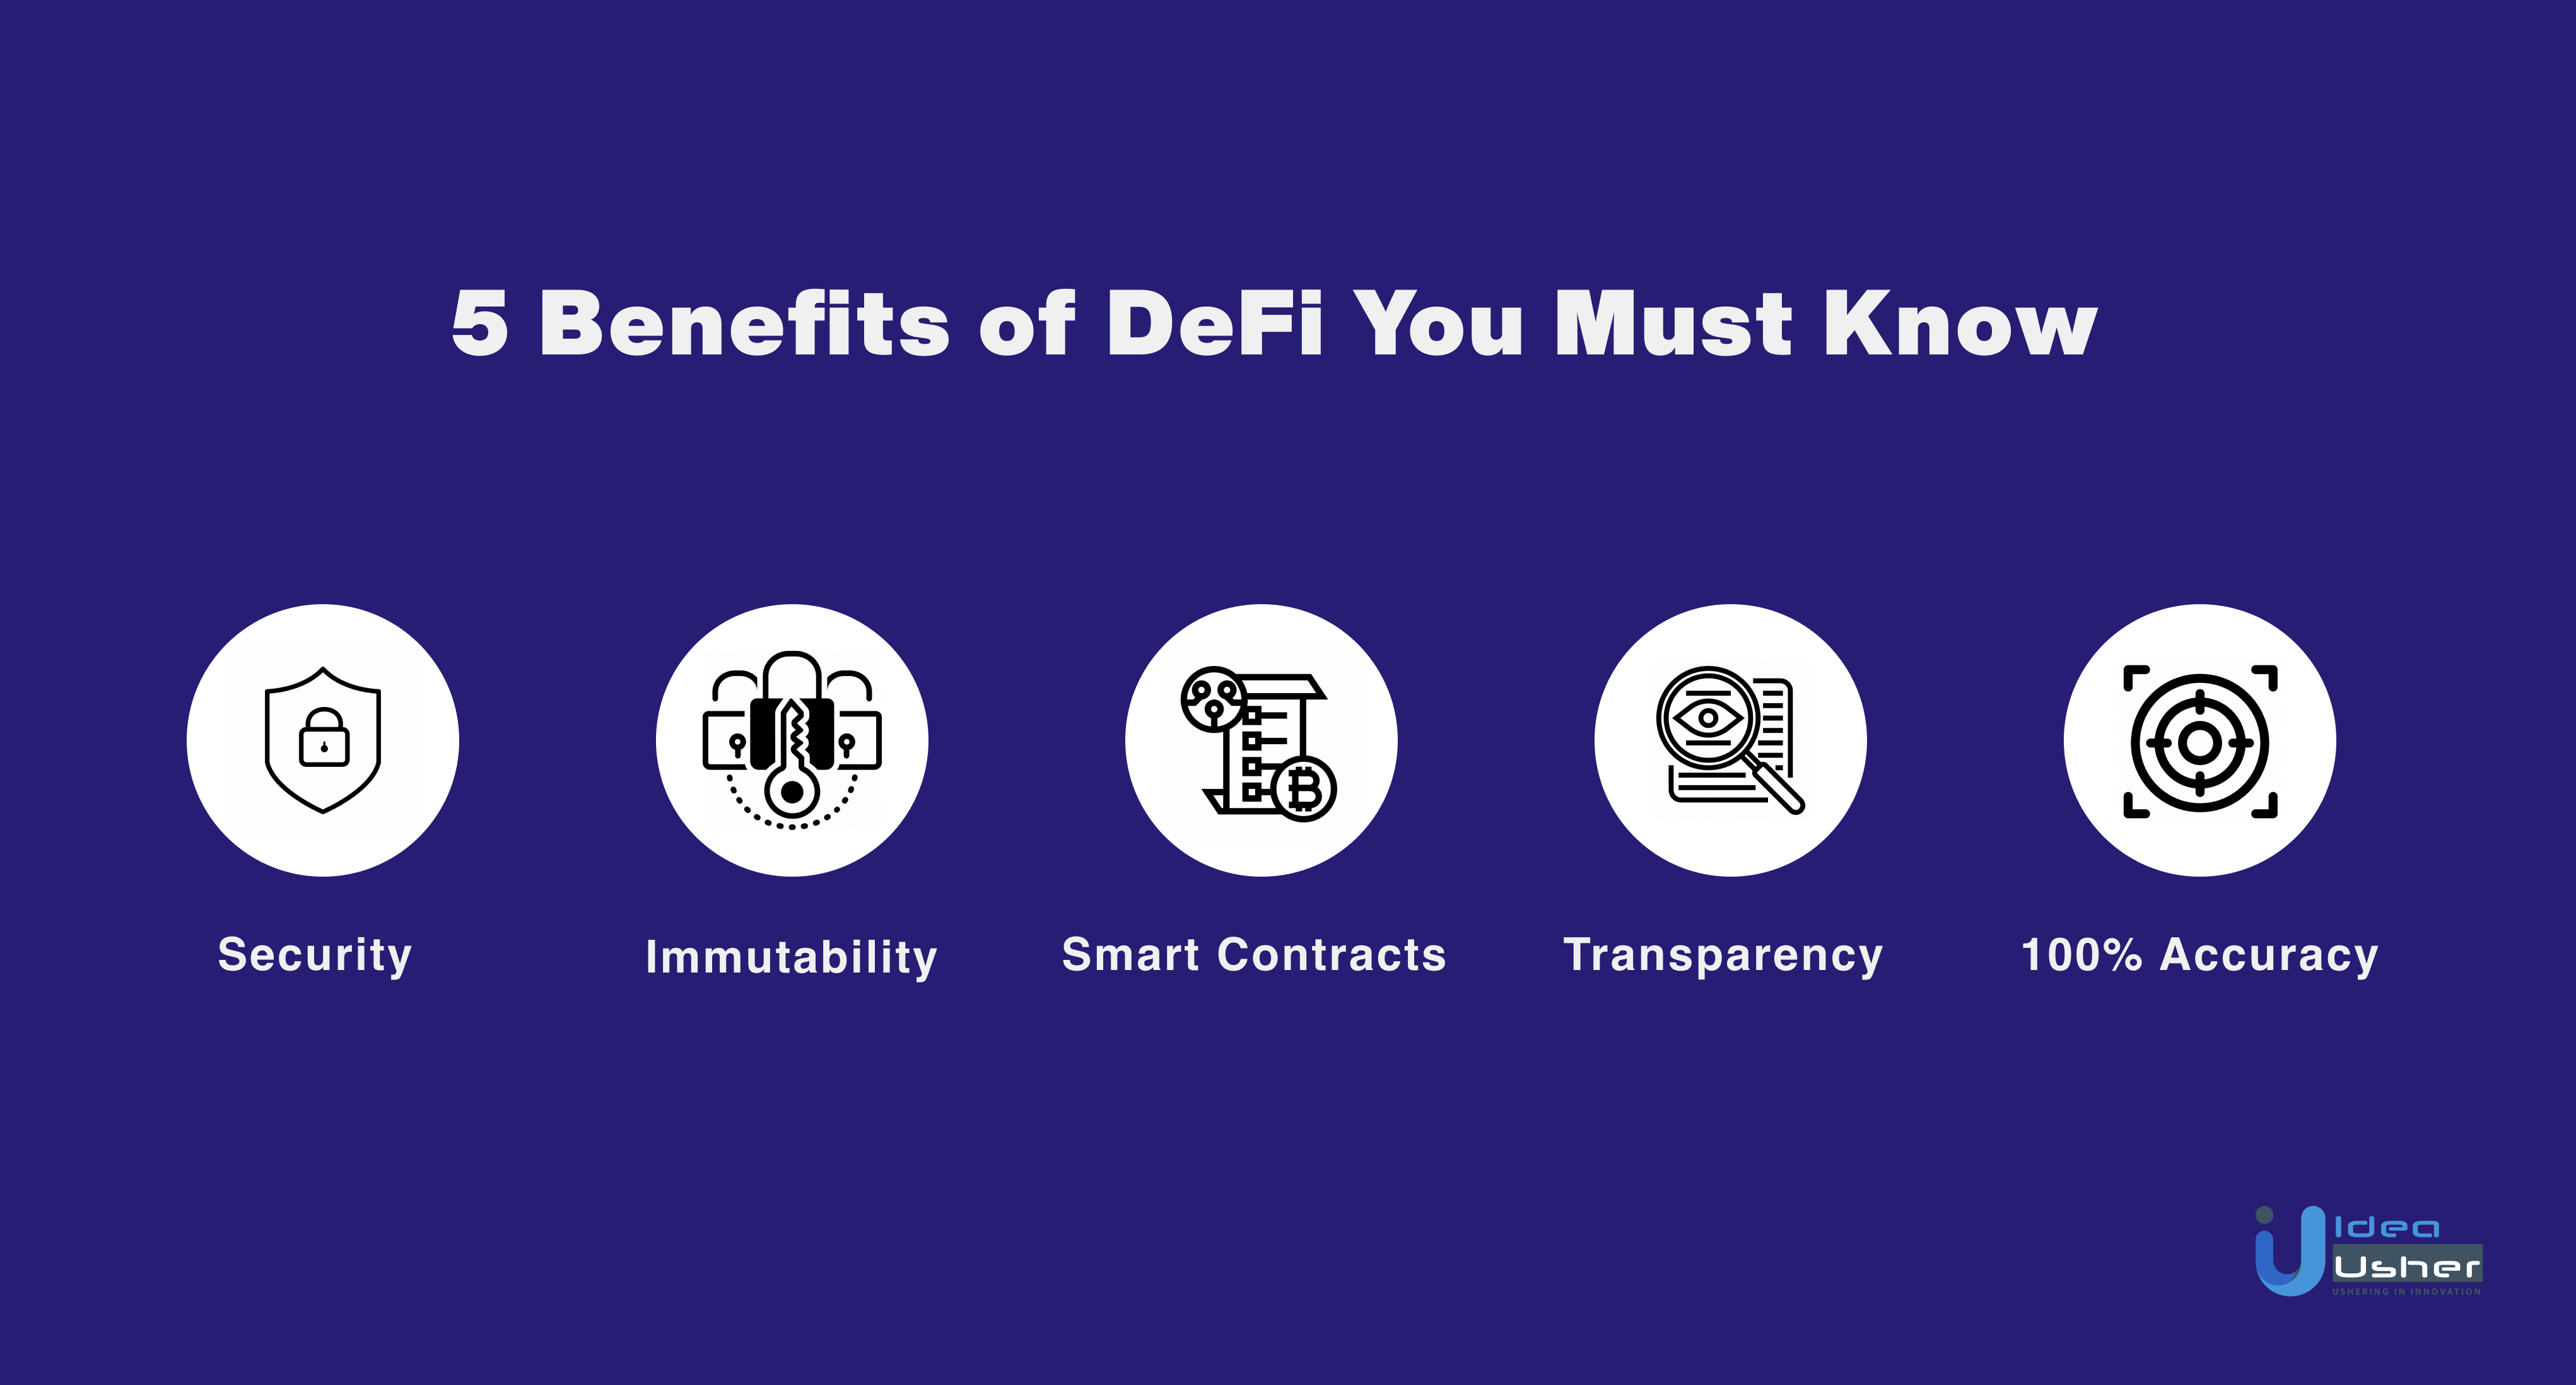 5 Benefits of DeFi You Must Know